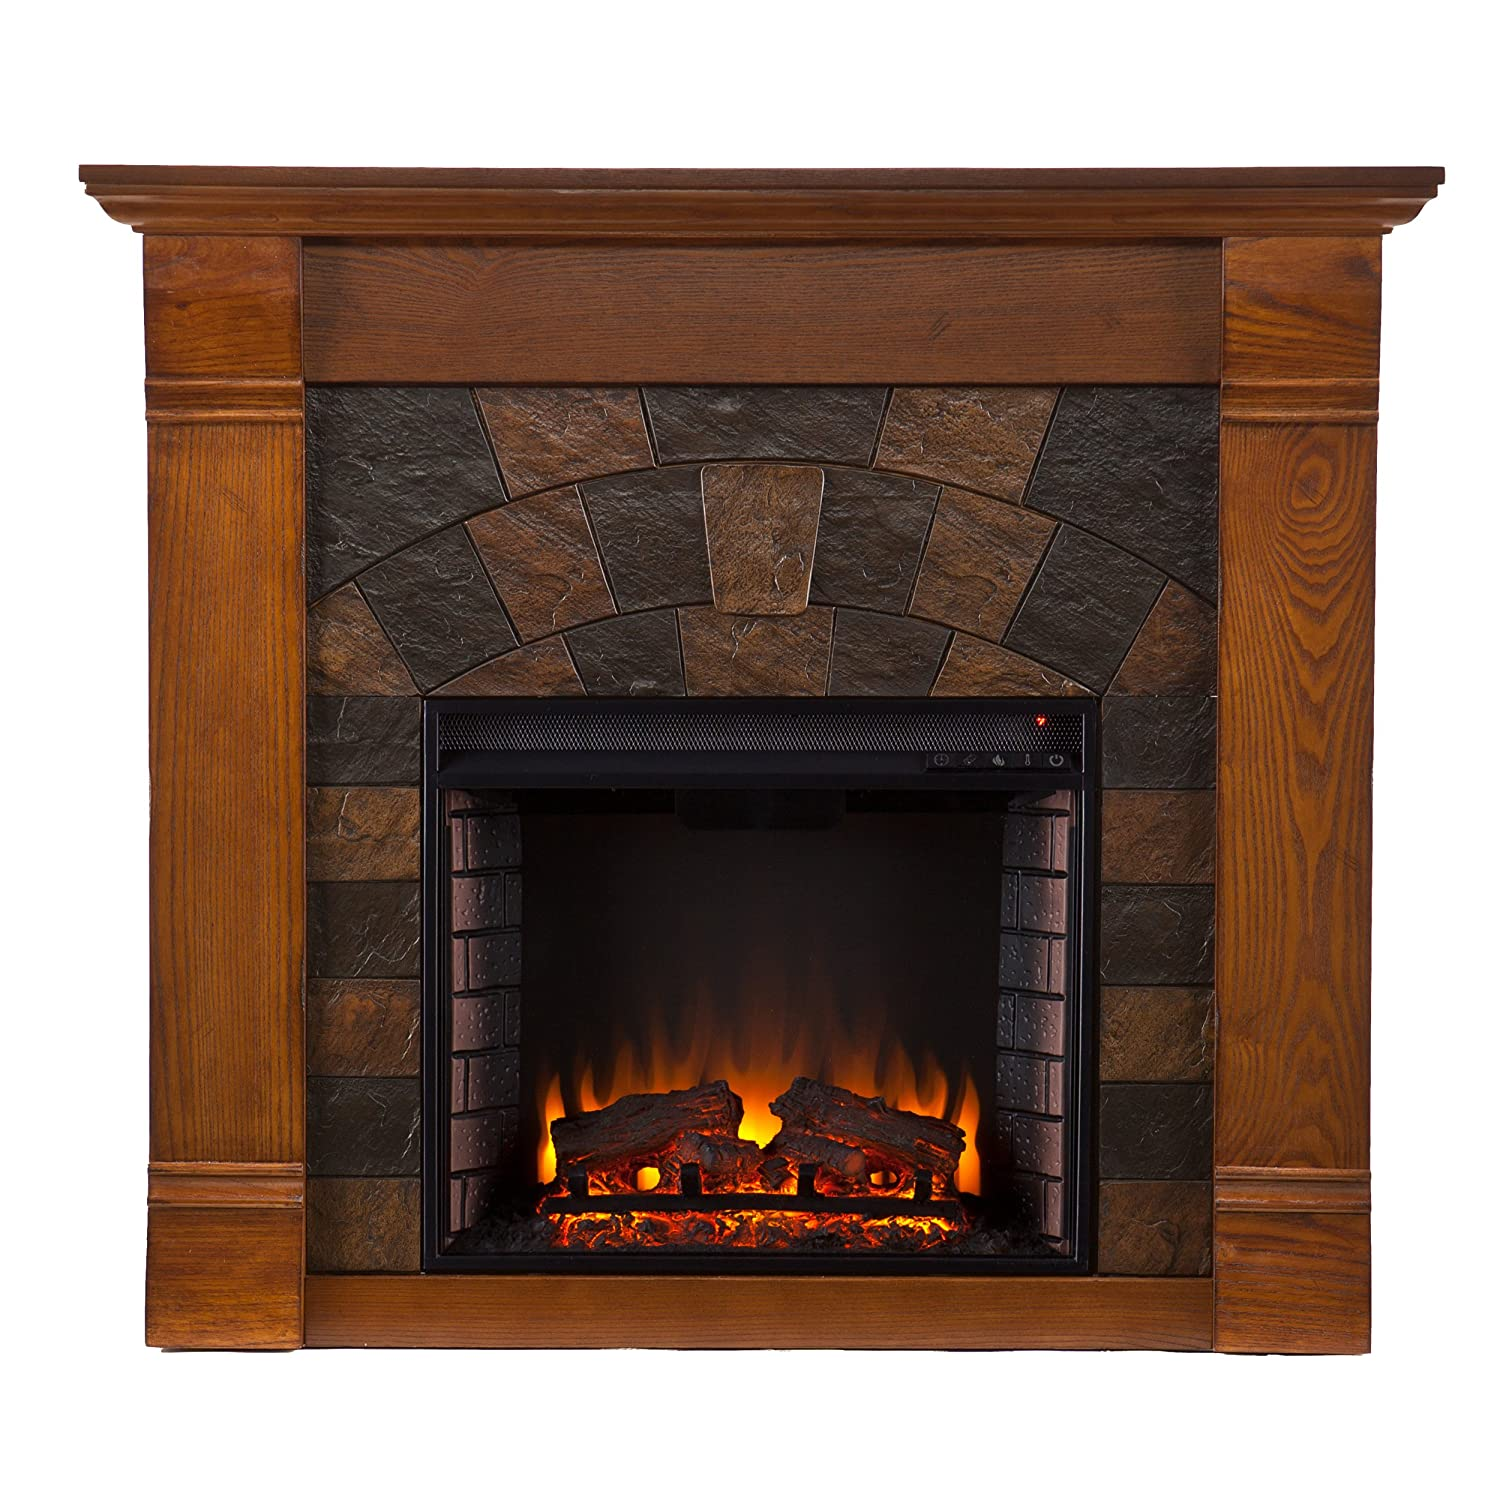 Elkmont Multi Colored Stone Tile Electric Fireplace - Antique Oak